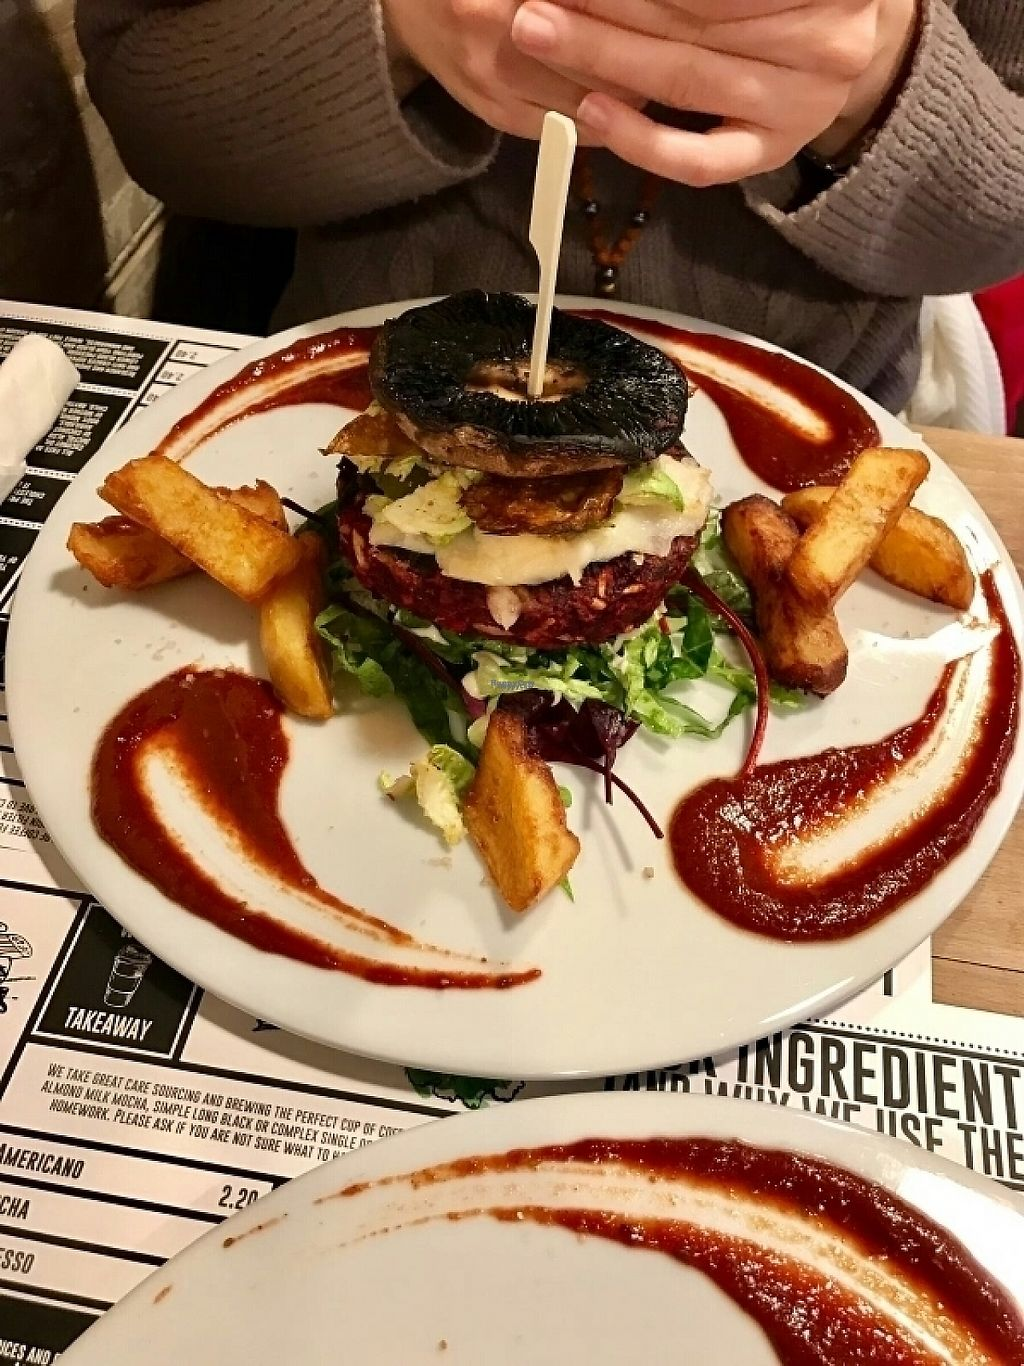 """Photo of Offbeet Food  by <a href=""""/members/profile/Skvivel"""">Skvivel</a> <br/>The beet burger :) <br/> February 2, 2017  - <a href='/contact/abuse/image/55388/221363'>Report</a>"""